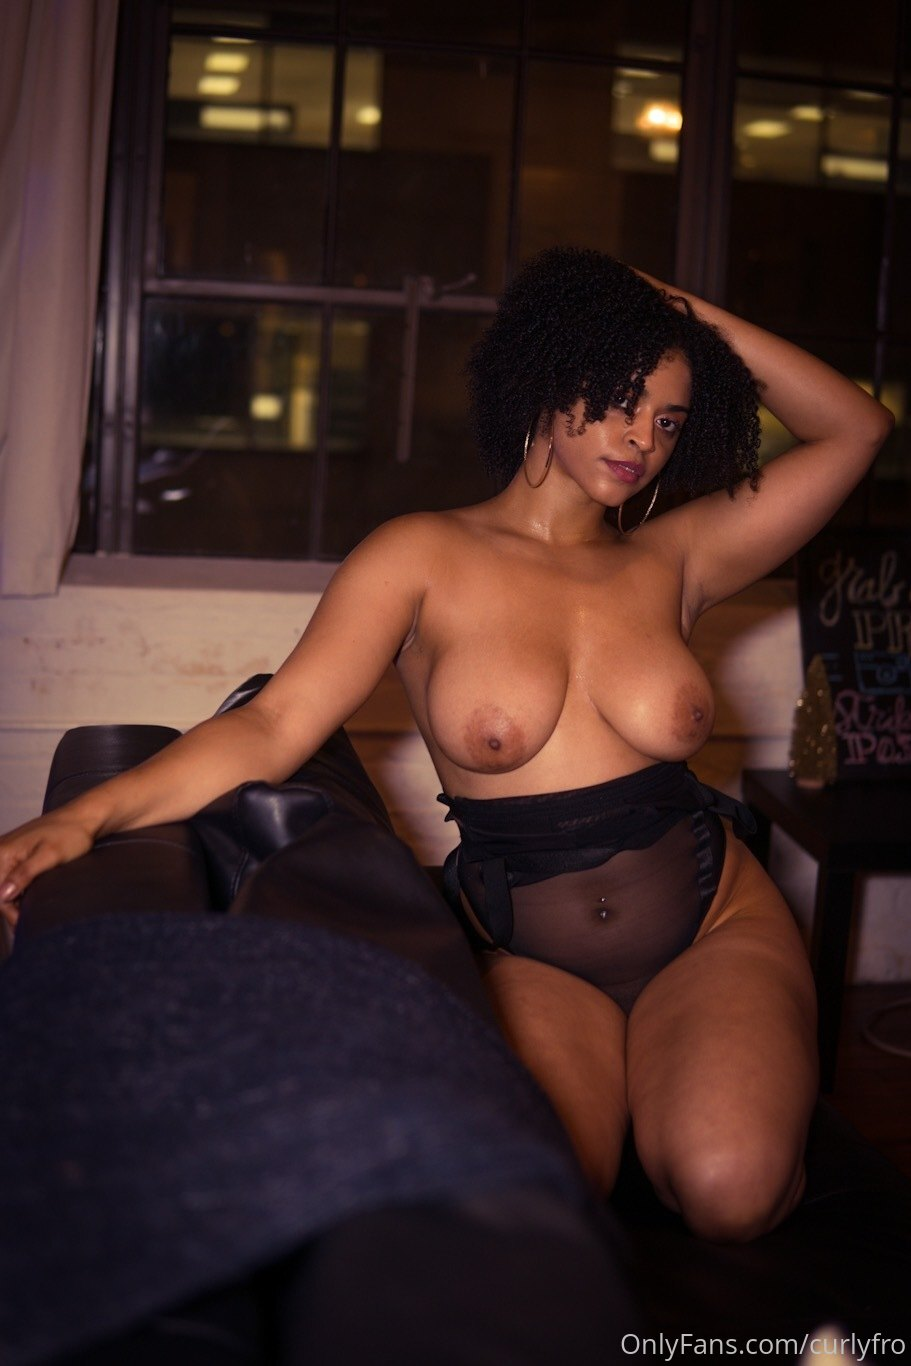 Curlyfro Nude Onlyfans Gallery Leaked